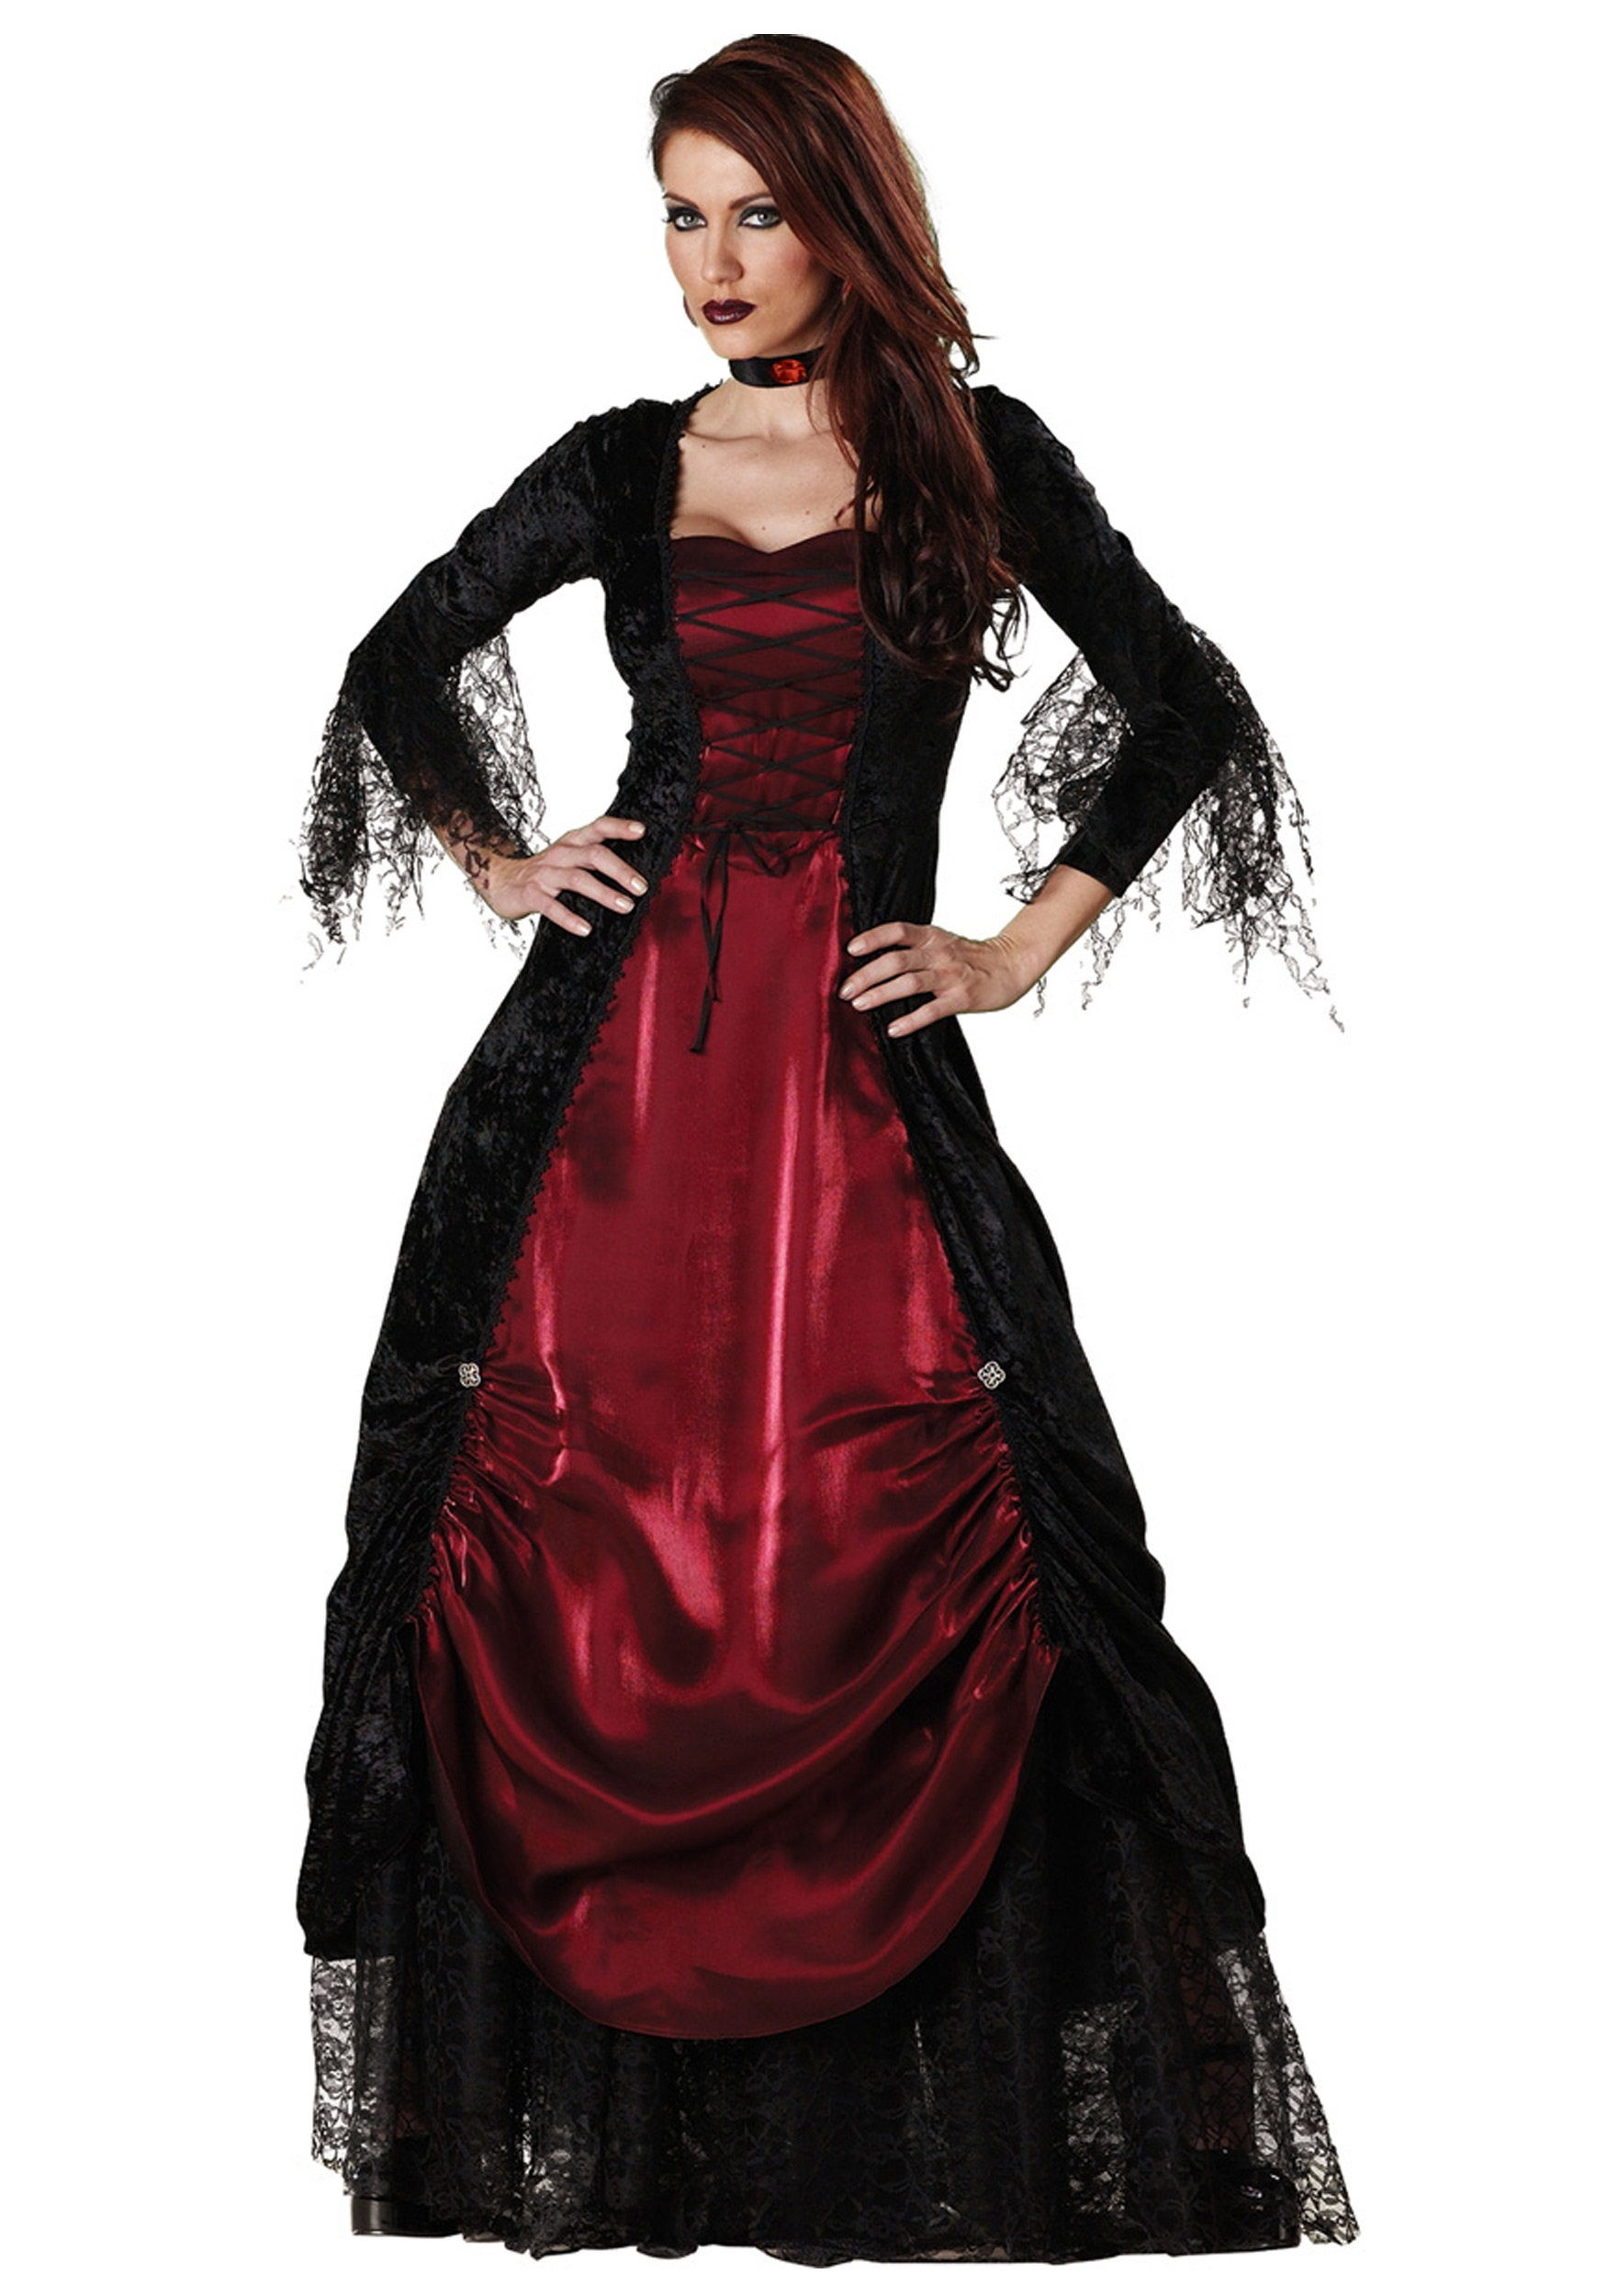 Womenu0027s Gothic Victorian V&ire Costume  sc 1 st  Fun.com & Gothic Victorian Vampire Costume for Women